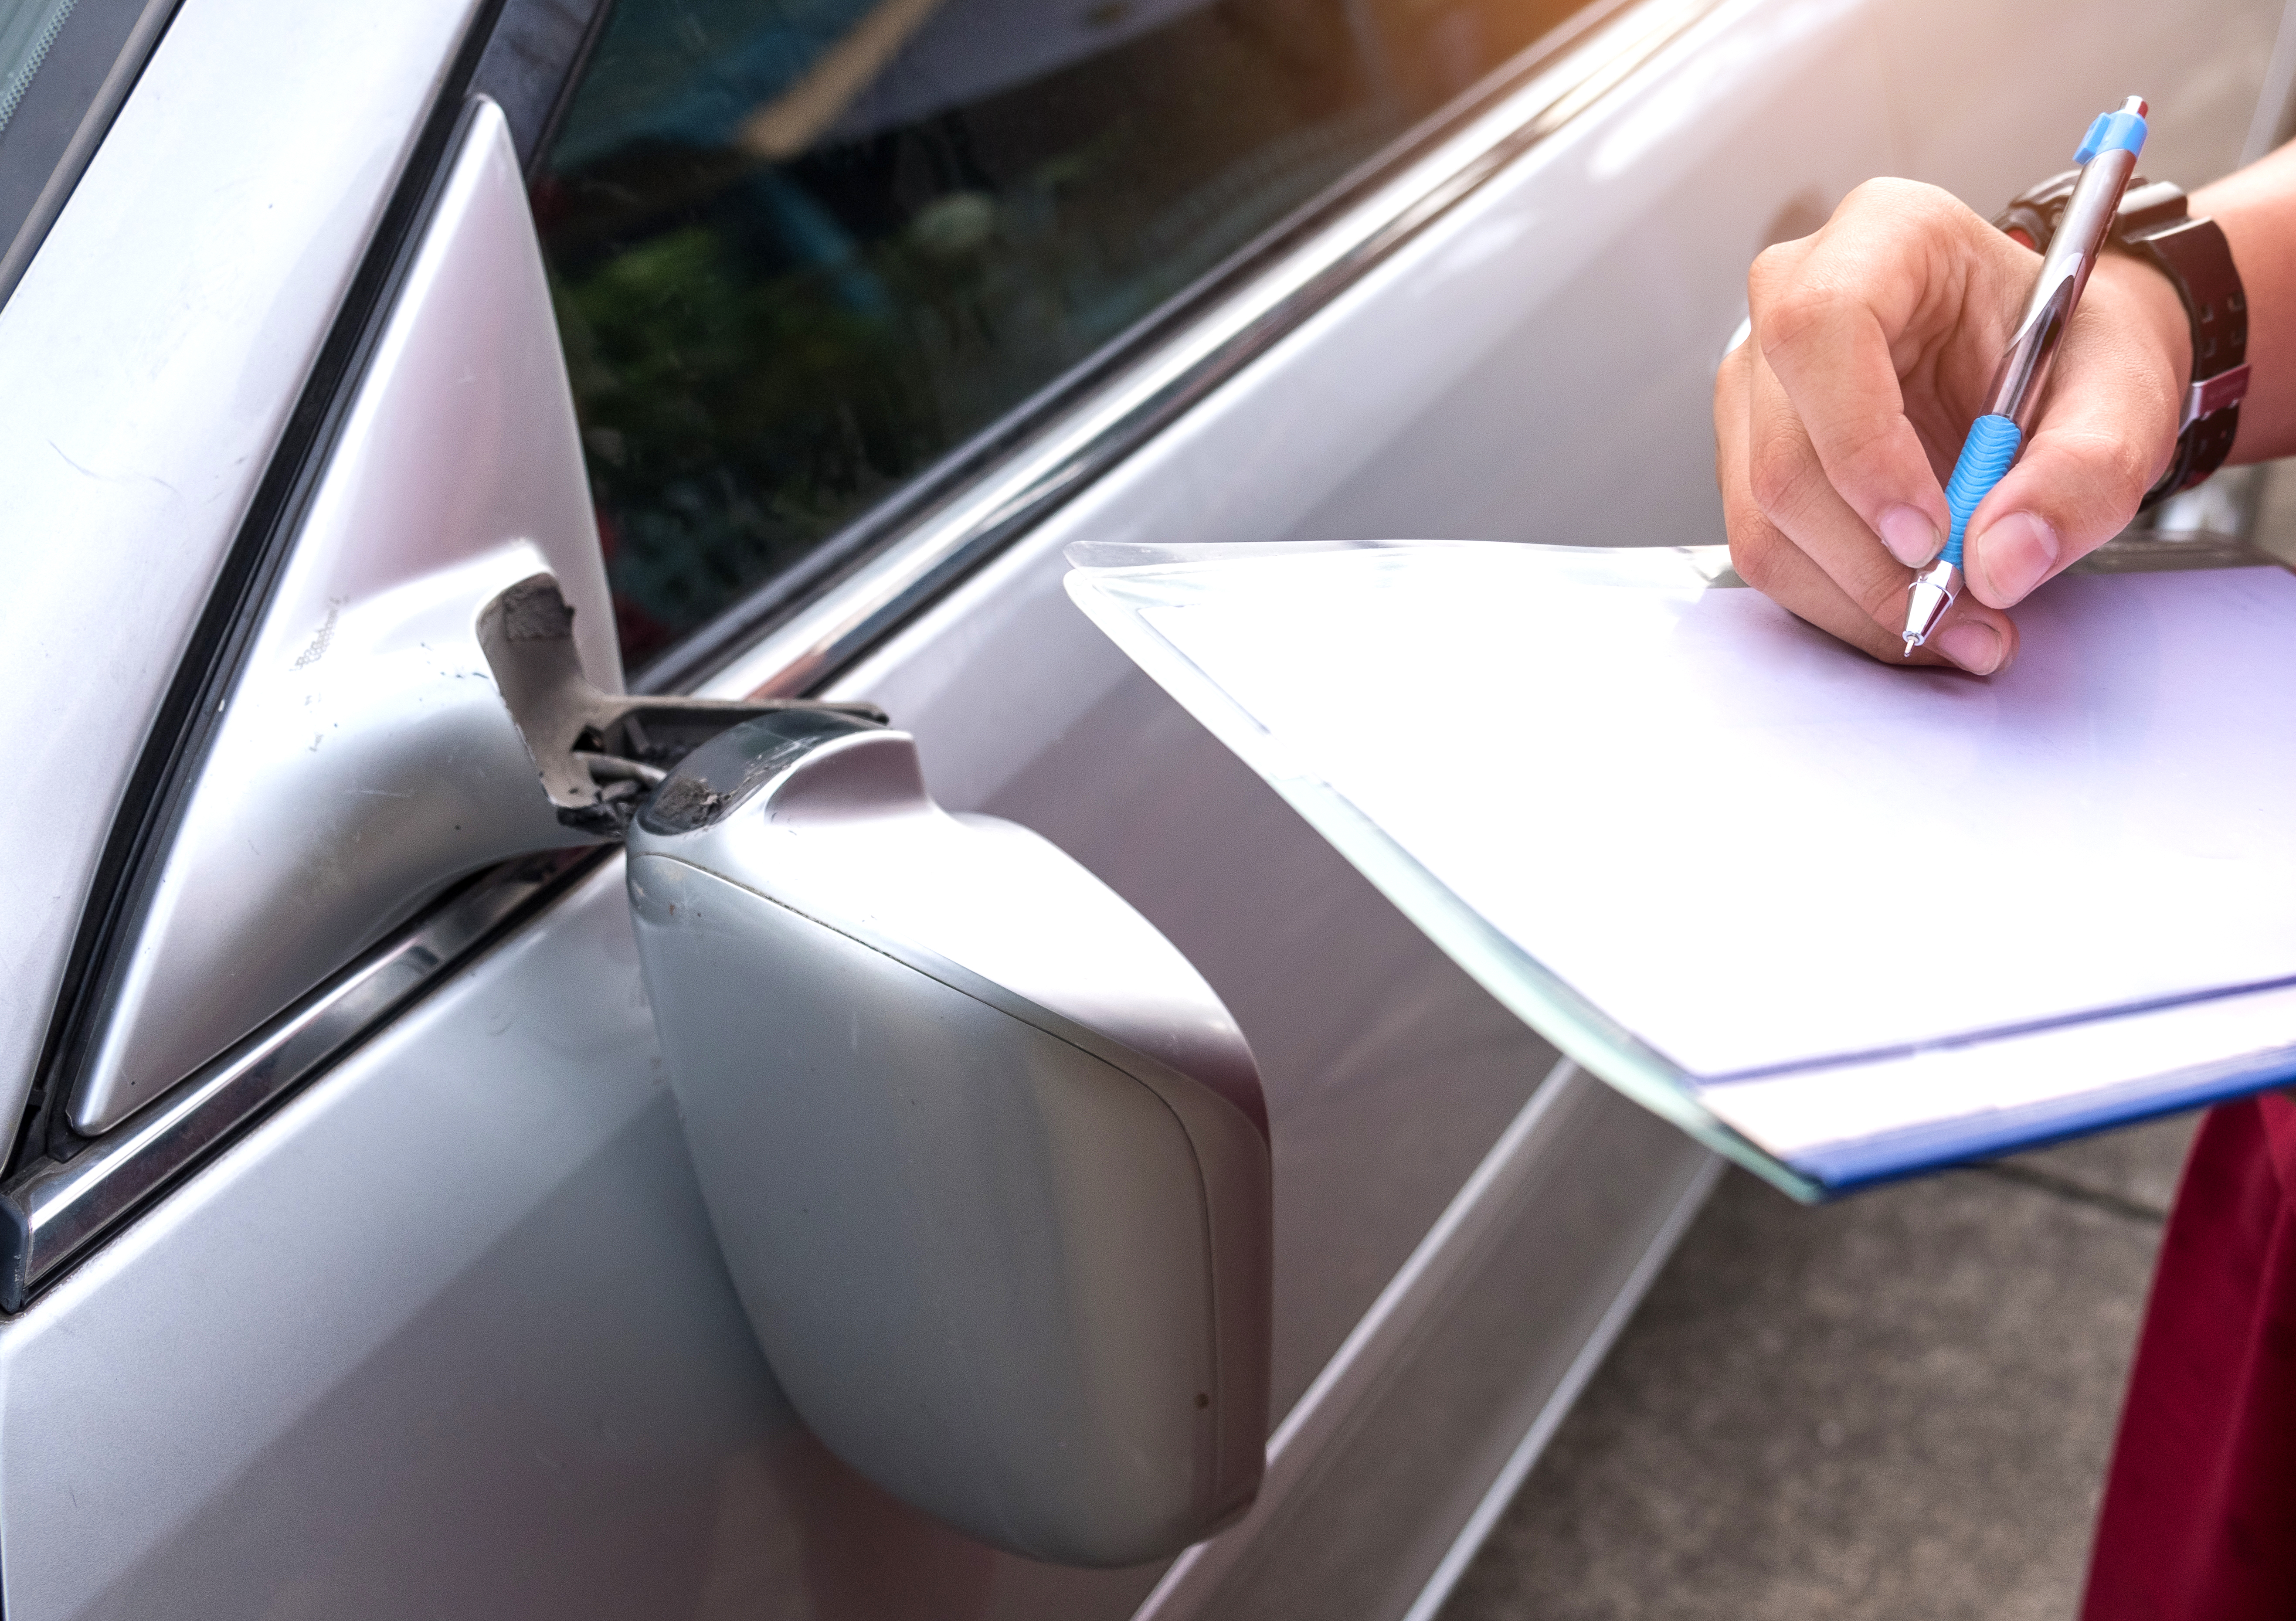 Insurance officer writing notes after an accident